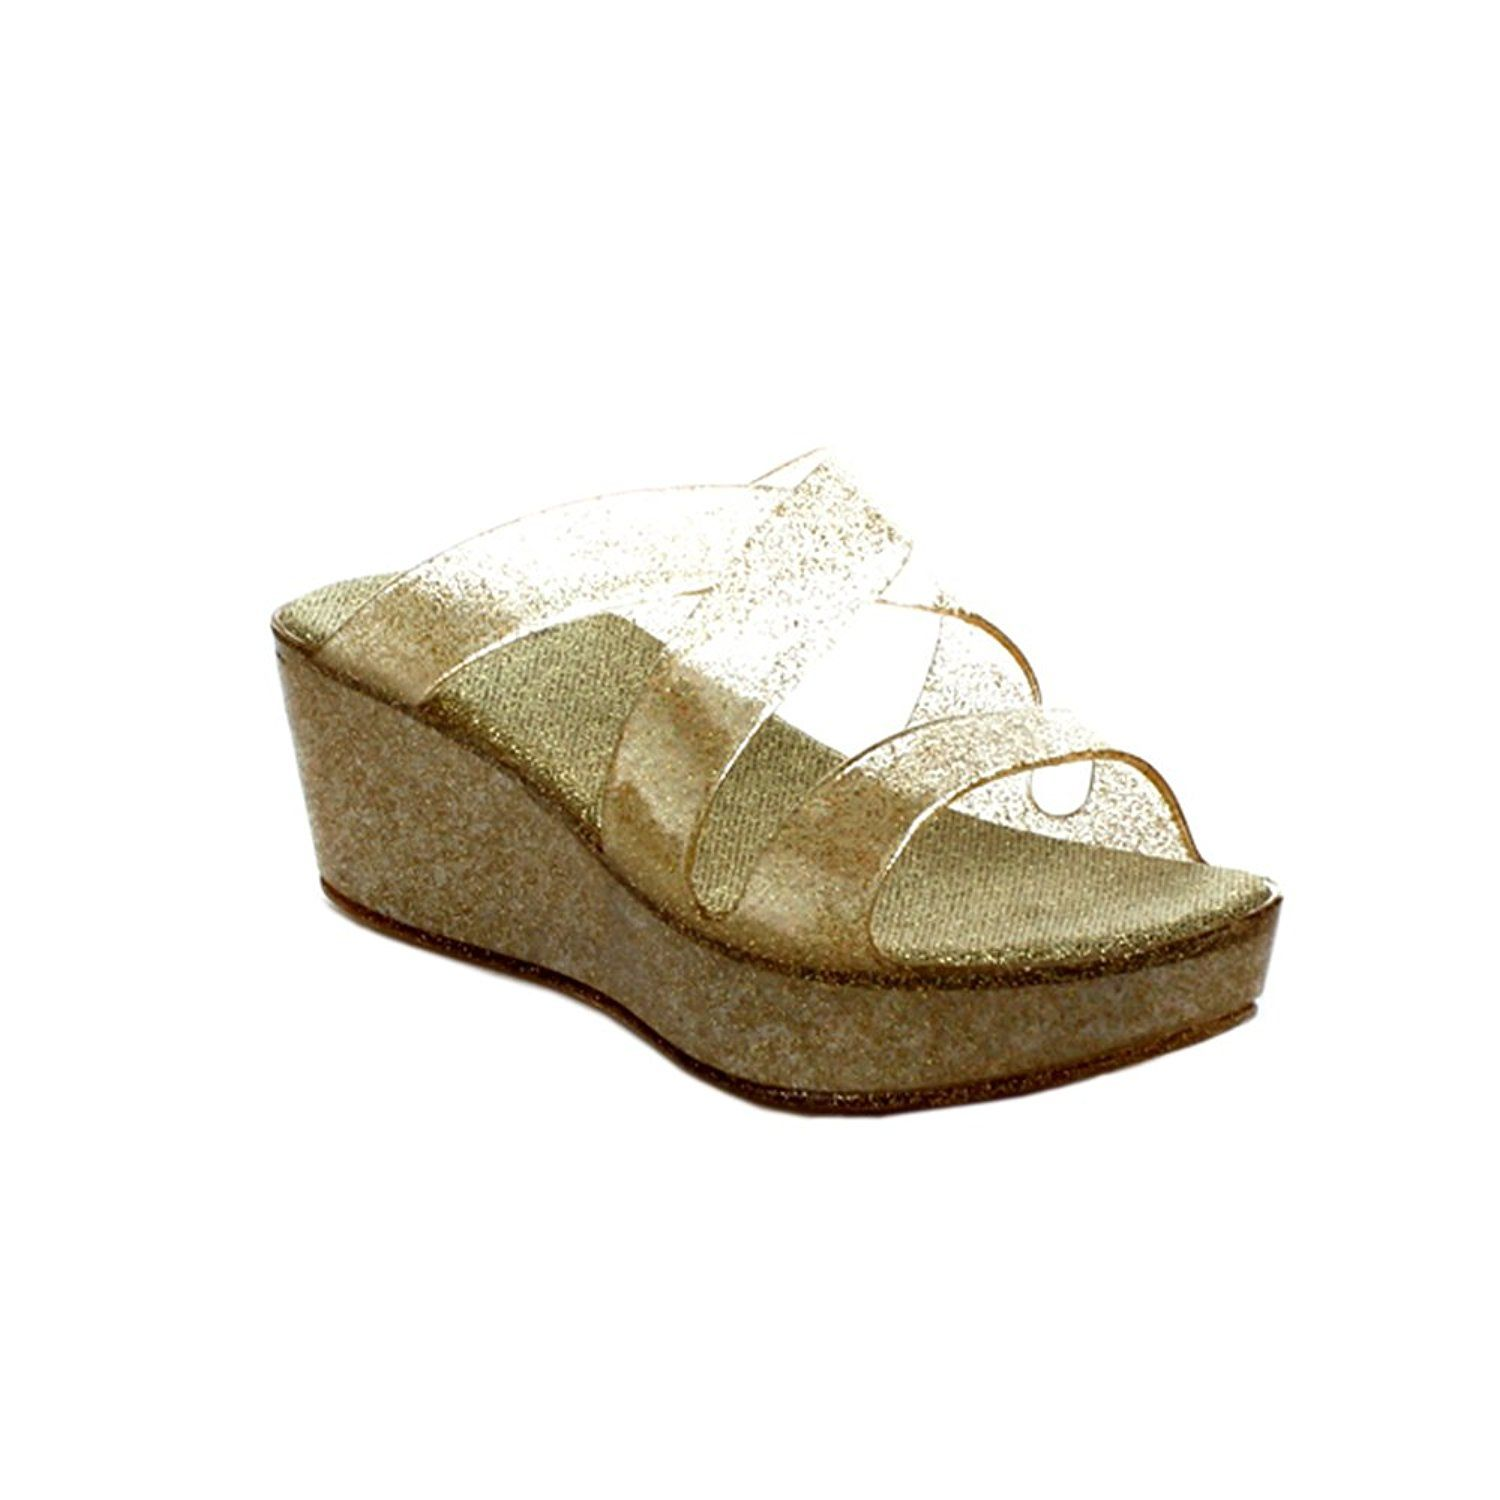 Easos Geal Hdl-228 Women s Soft Jelly Platform Sandals     Check out this  great image   Jelly Sandals